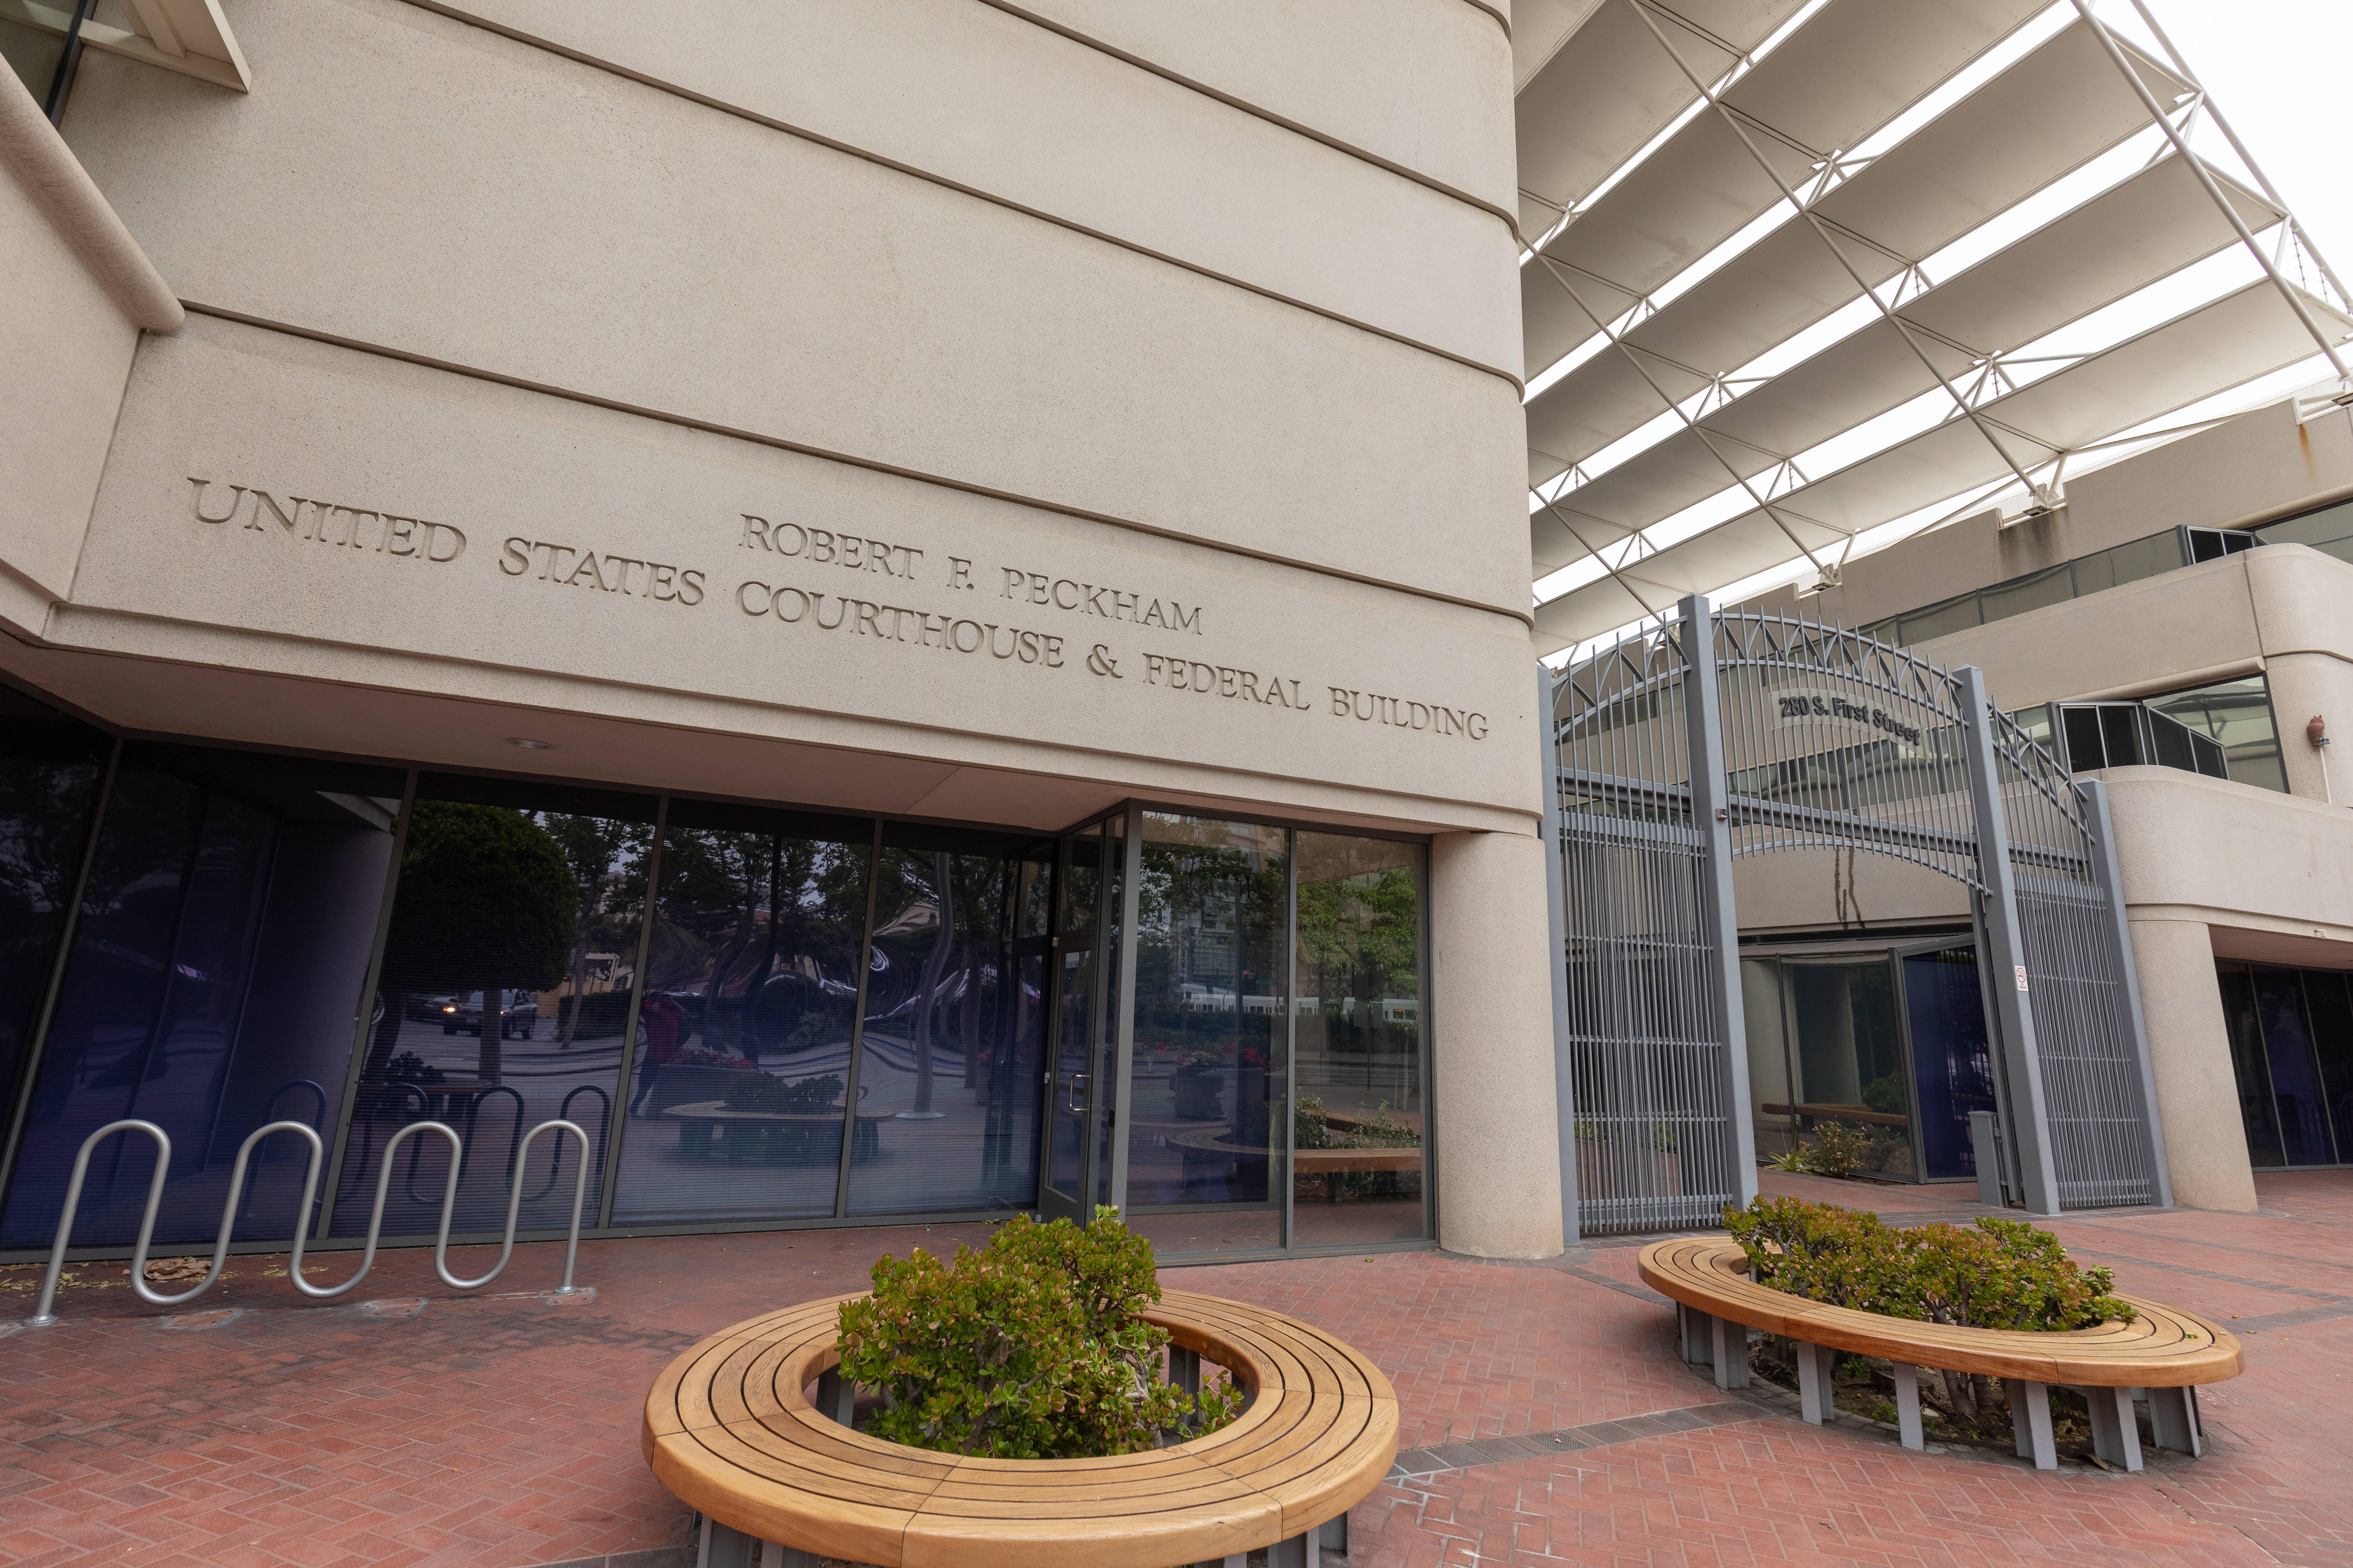 US District Court for Northern District of California, San Jose